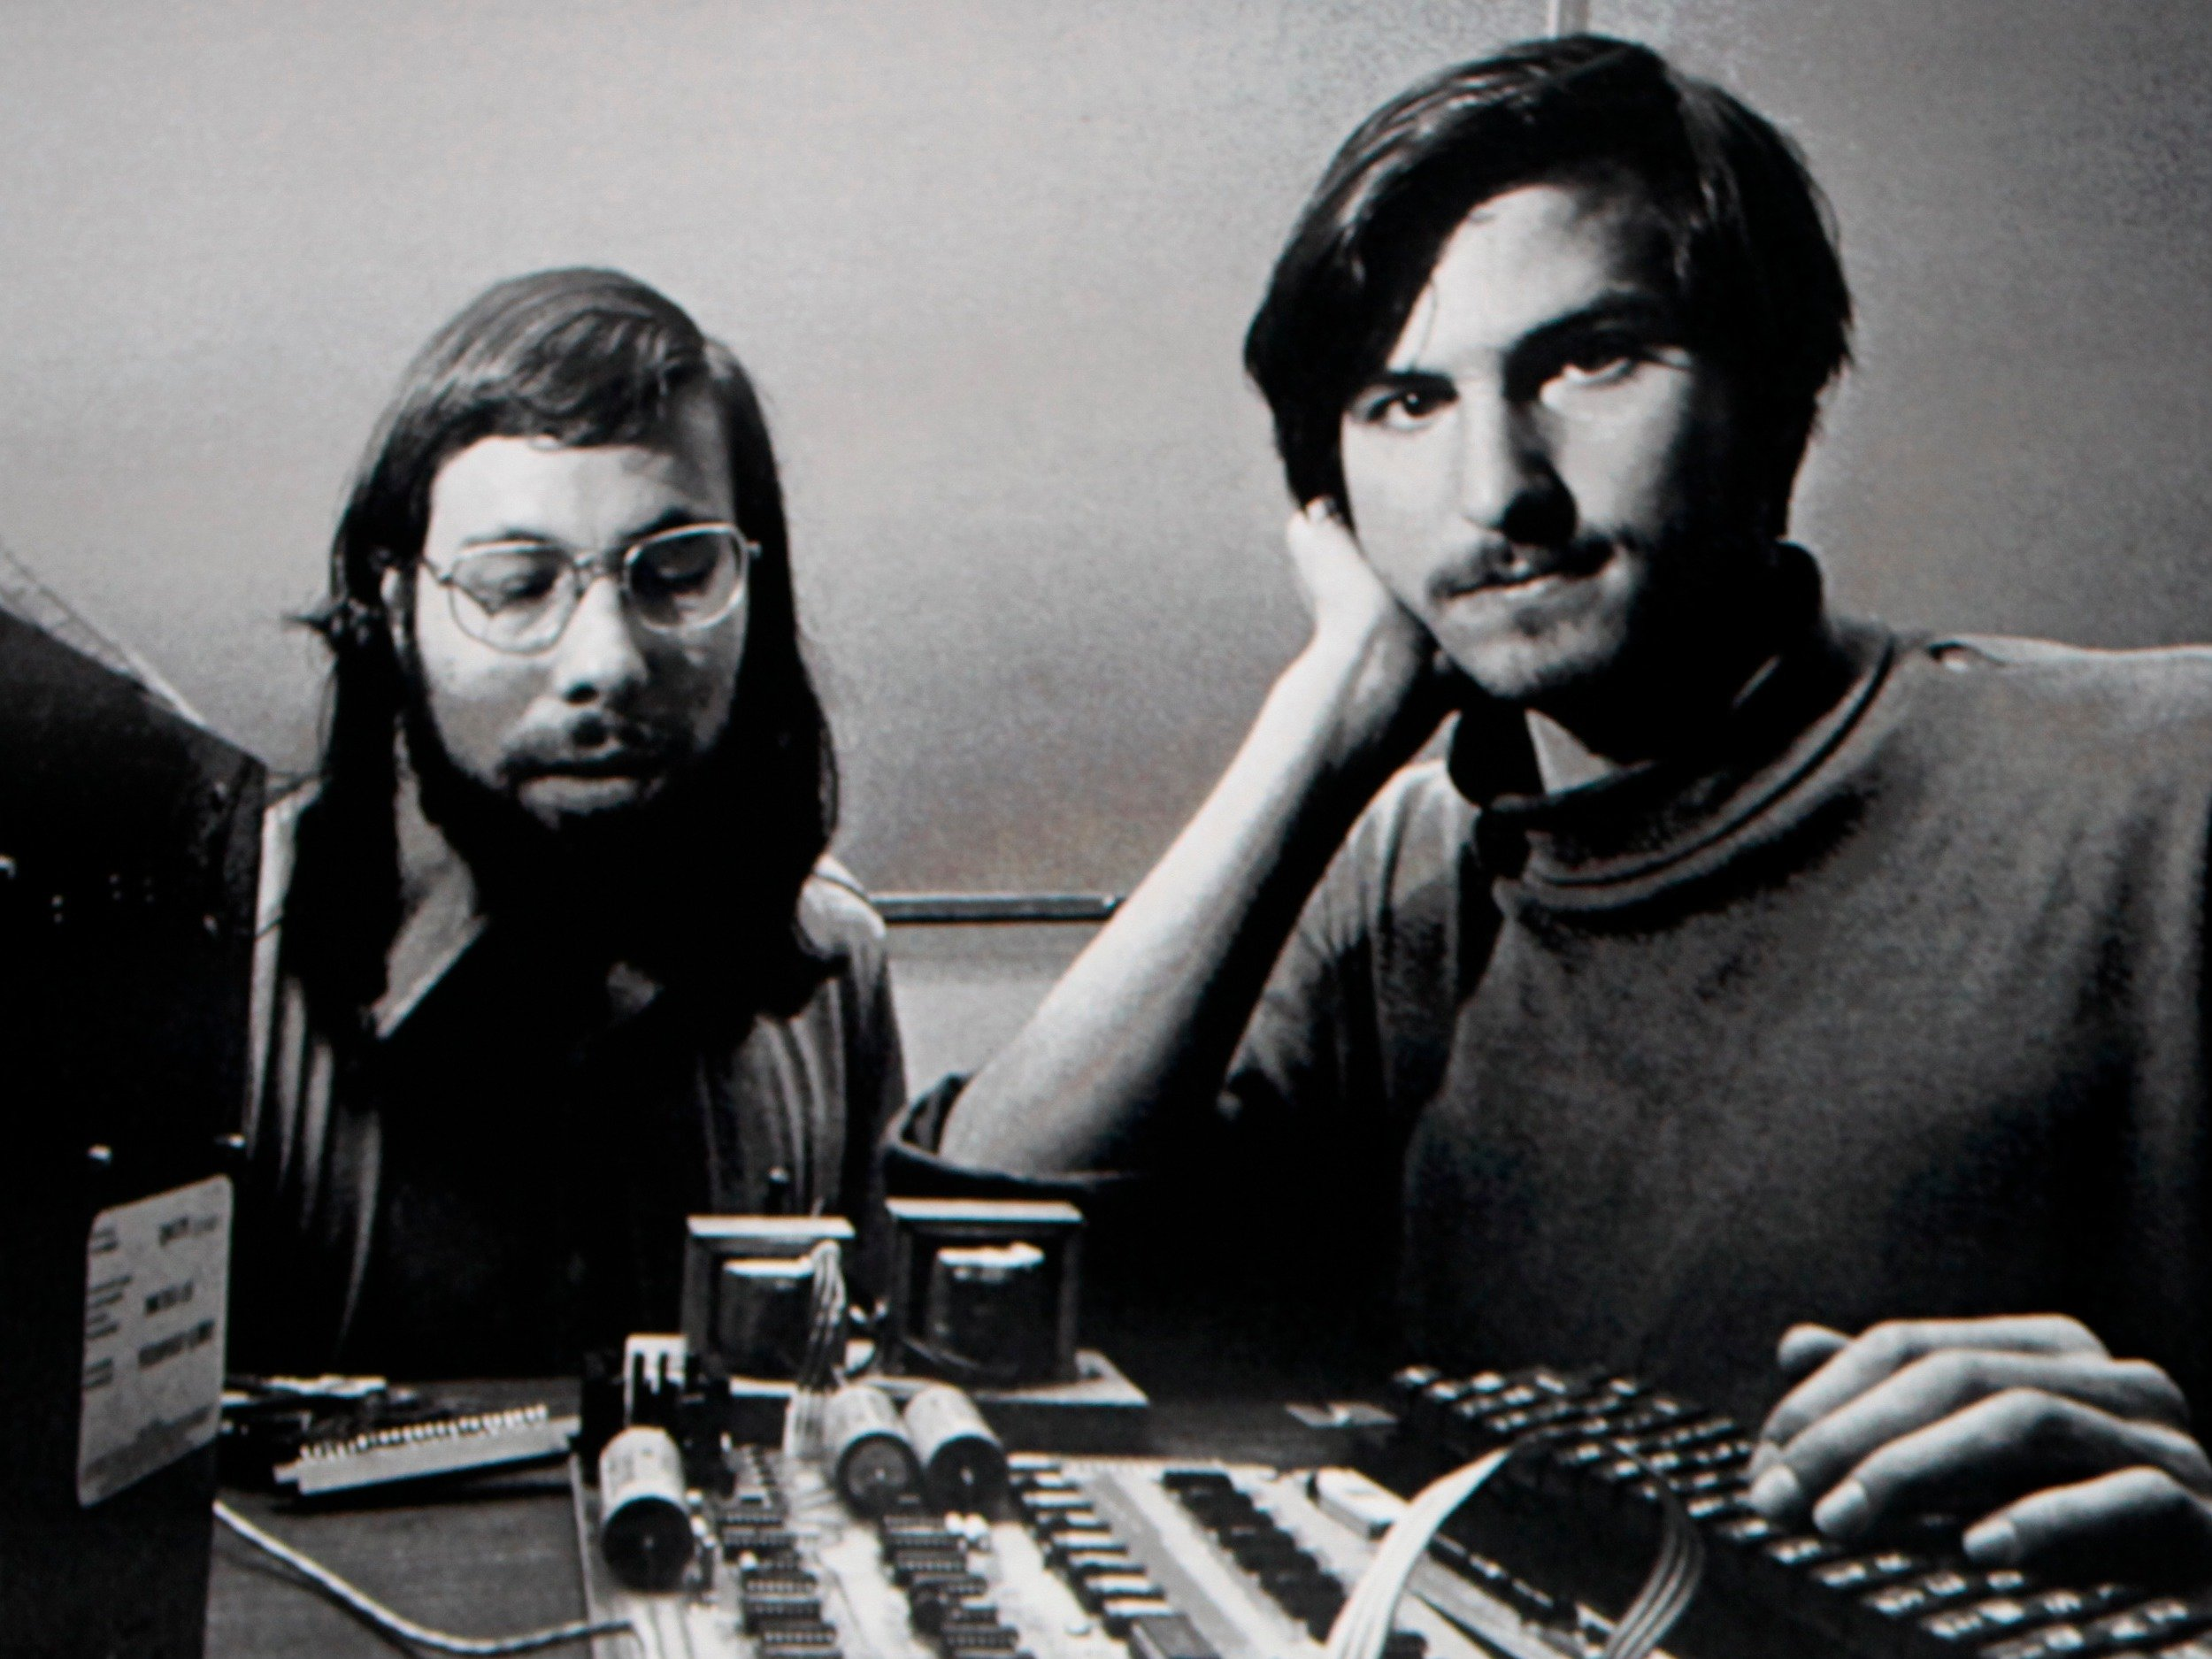 Jobs and Woz 600